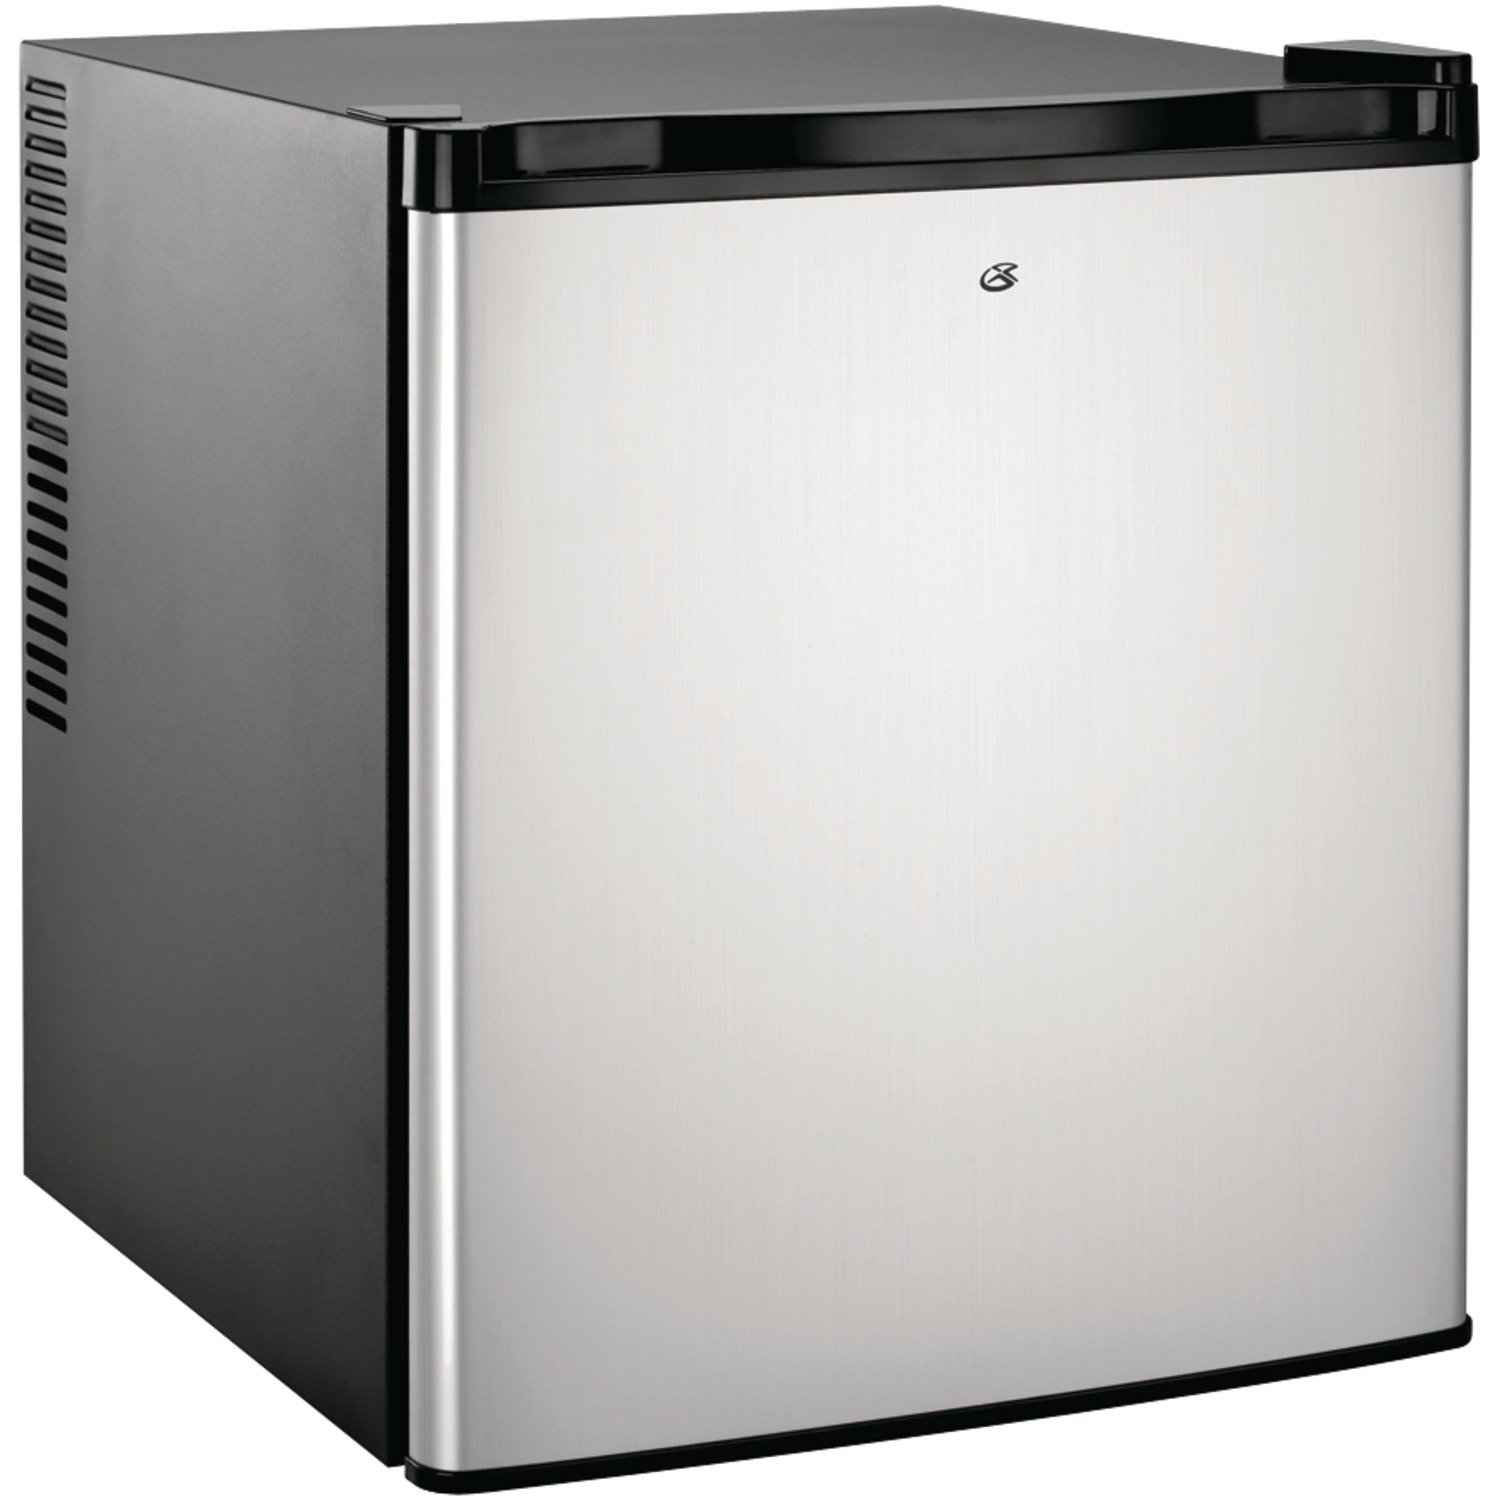 Culinair Af100s 1.7-Cubic Foot Compact Refrigerator, Silver and Black